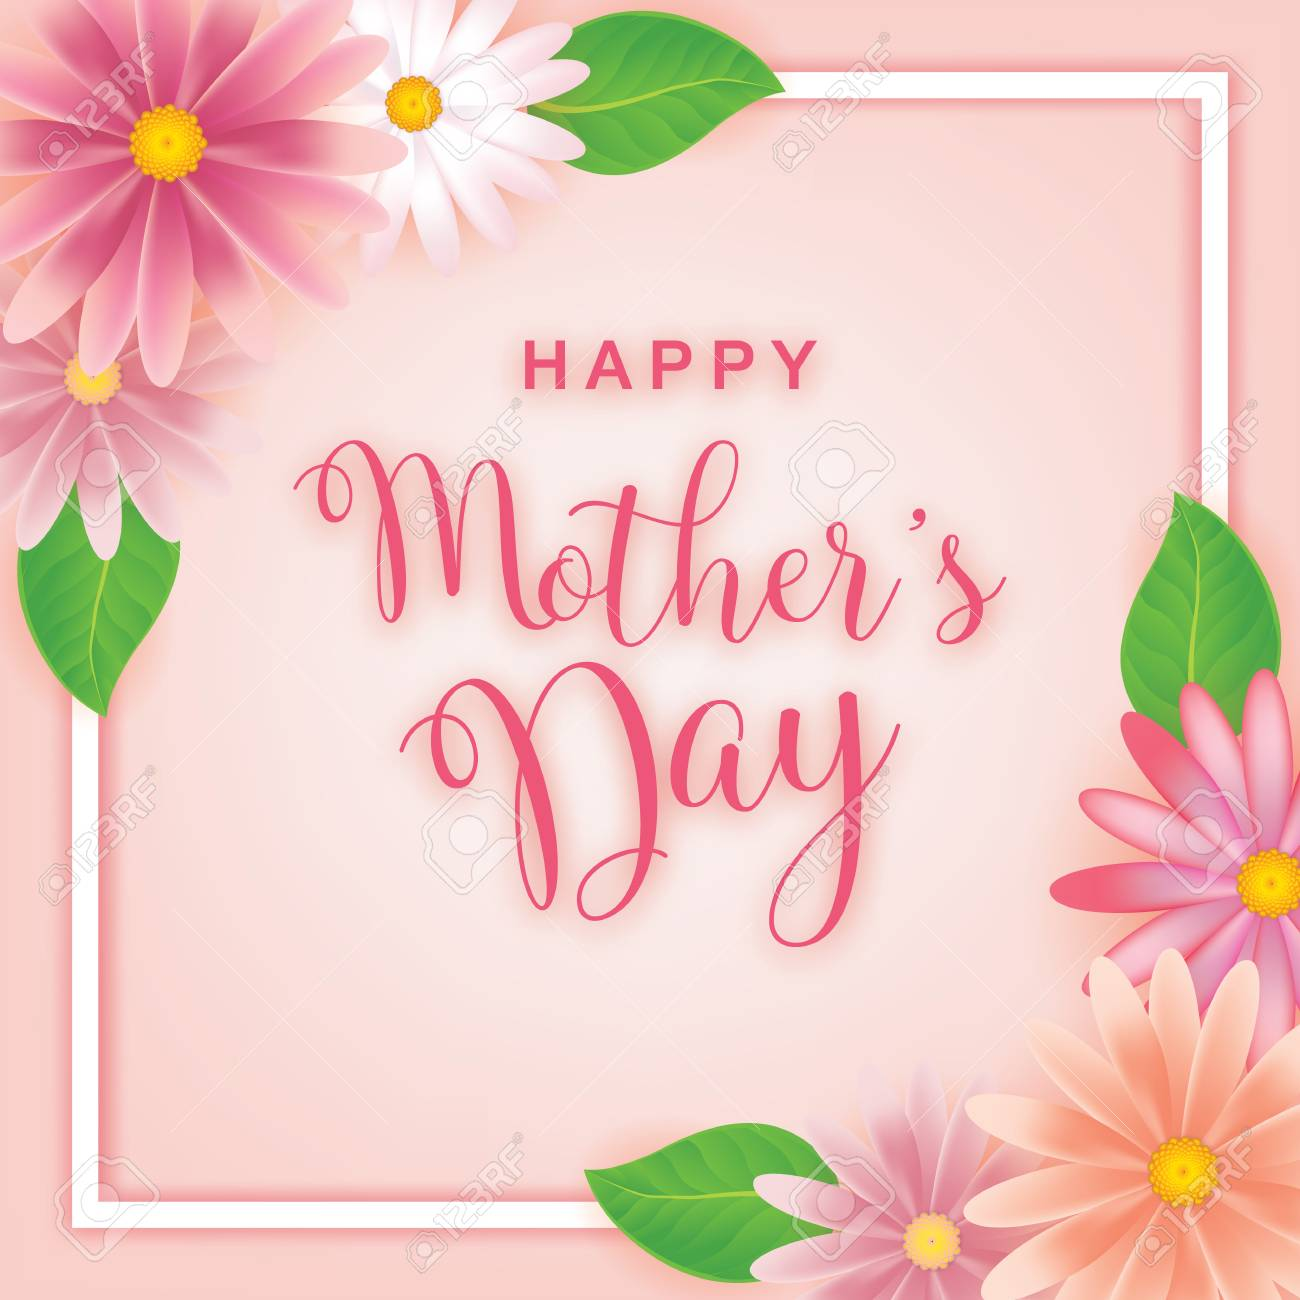 Mothers Day Greeting Card With Flowers Background Stock Vector